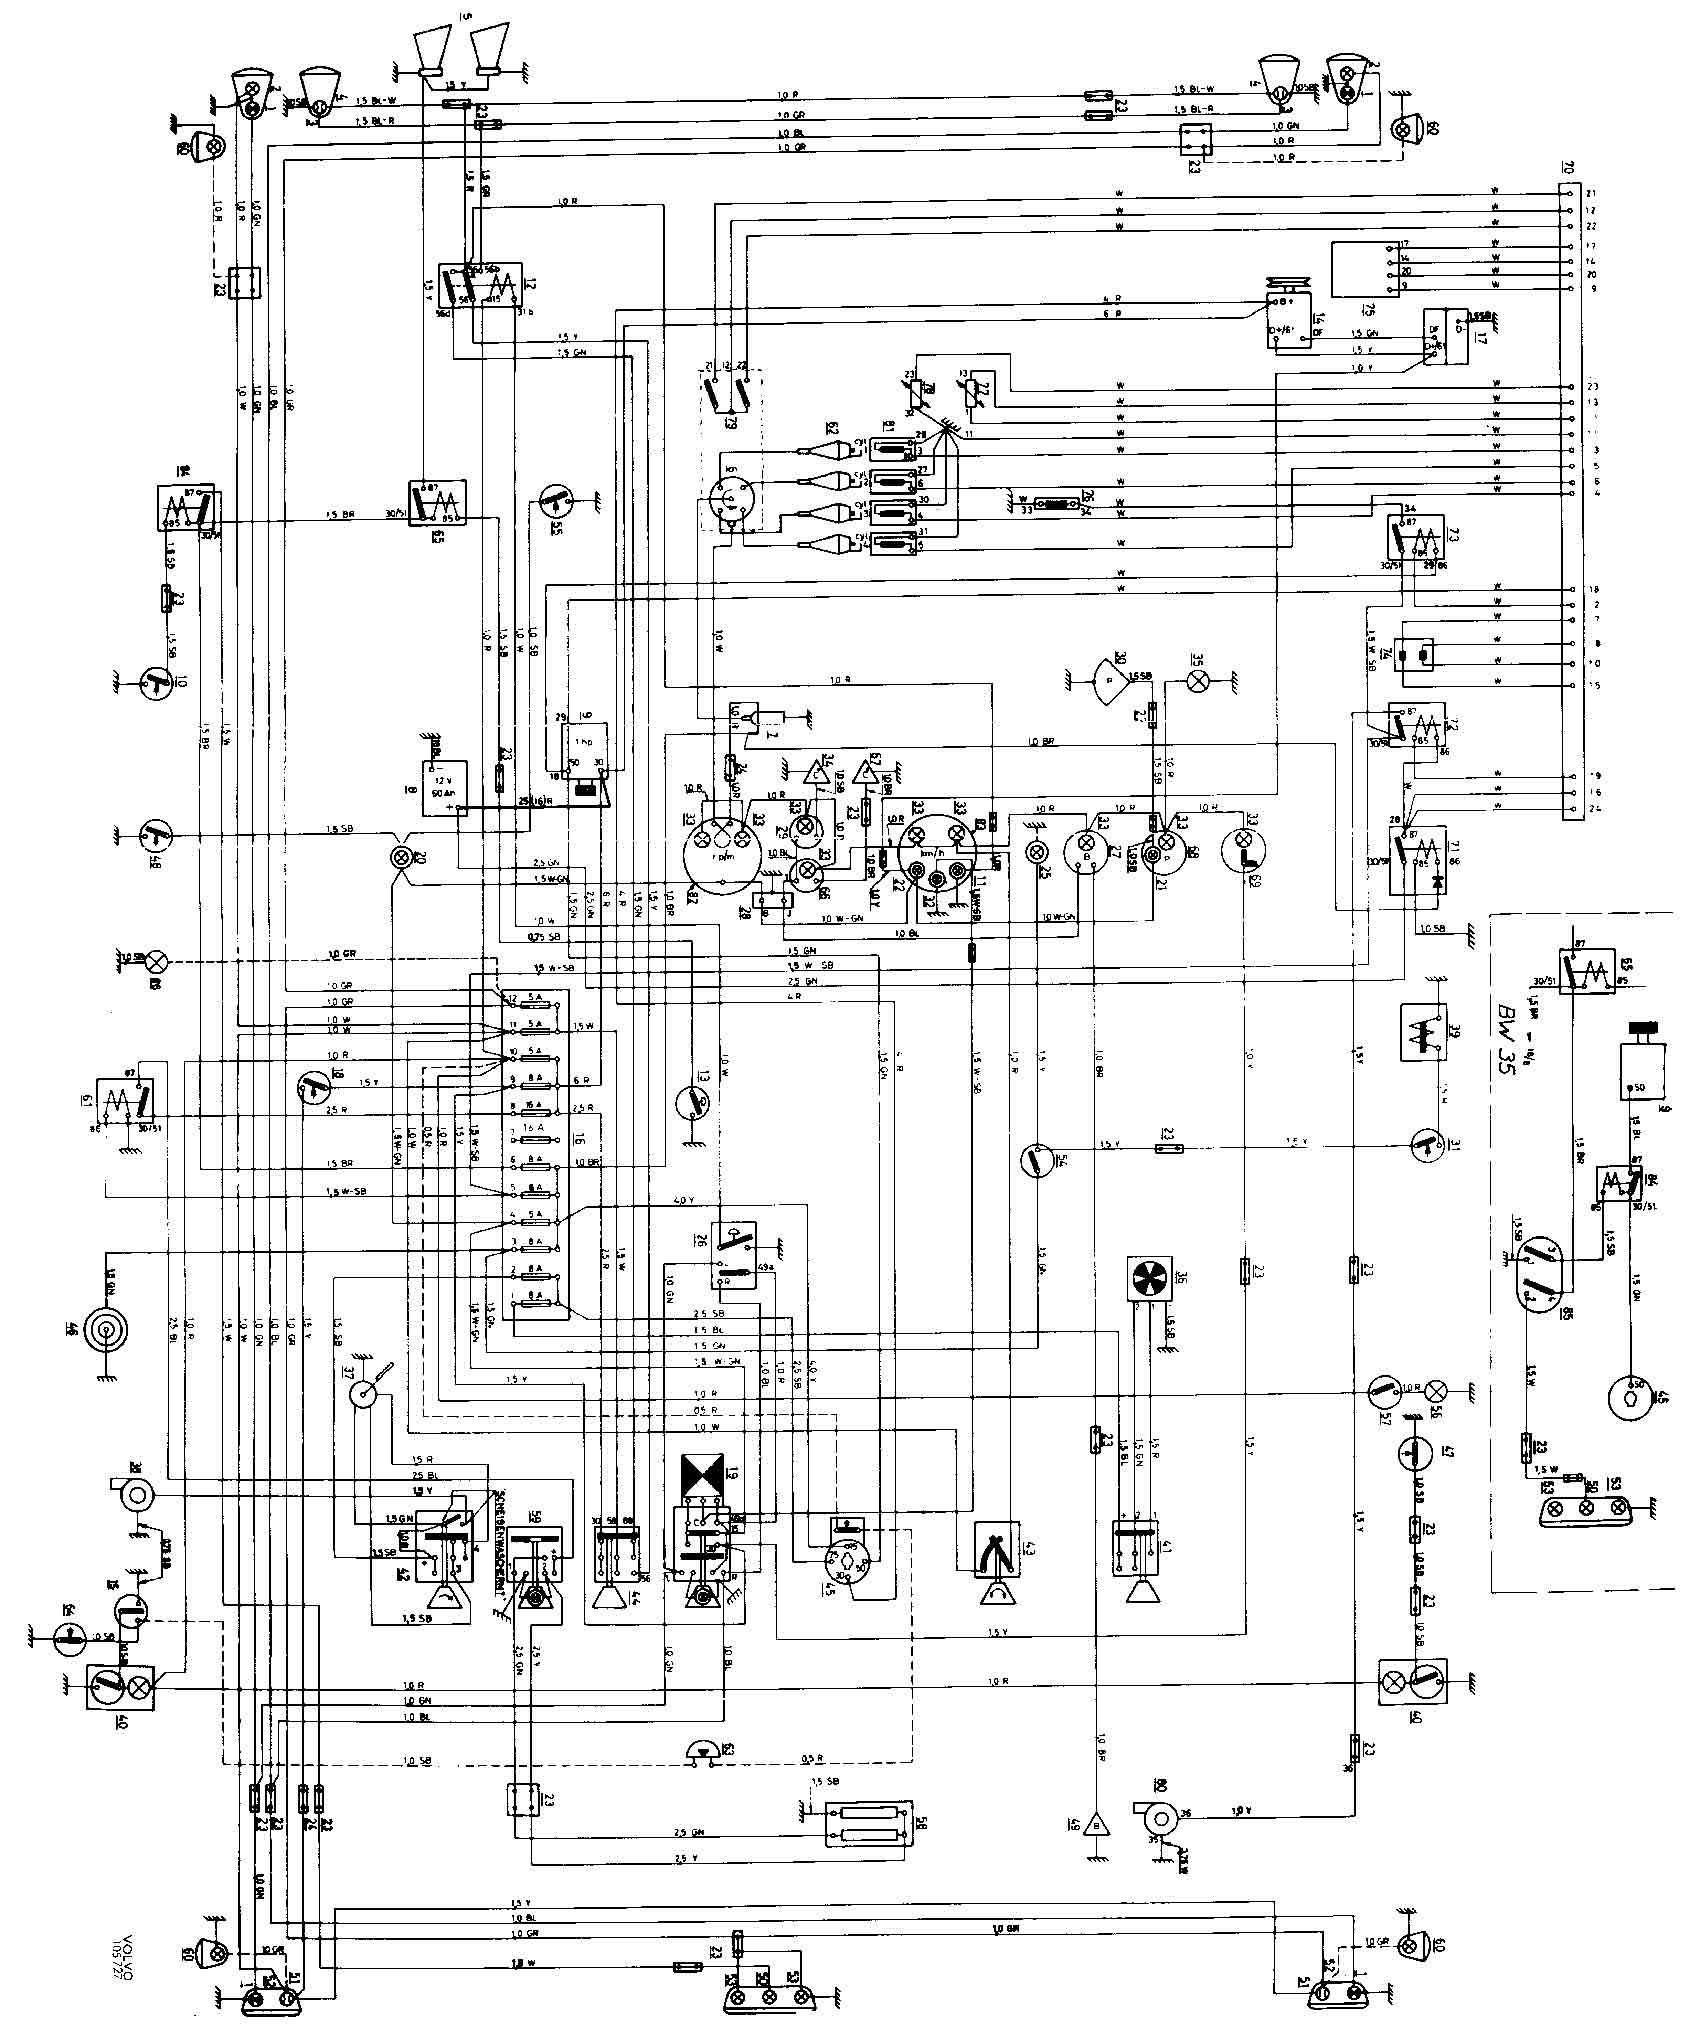 1800E Wiring Diagram volvo v70 wiring diagram 99 volvo s70 oil filter diagram \u2022 free 1988 volvo 240 wiring diagram at mifinder.co